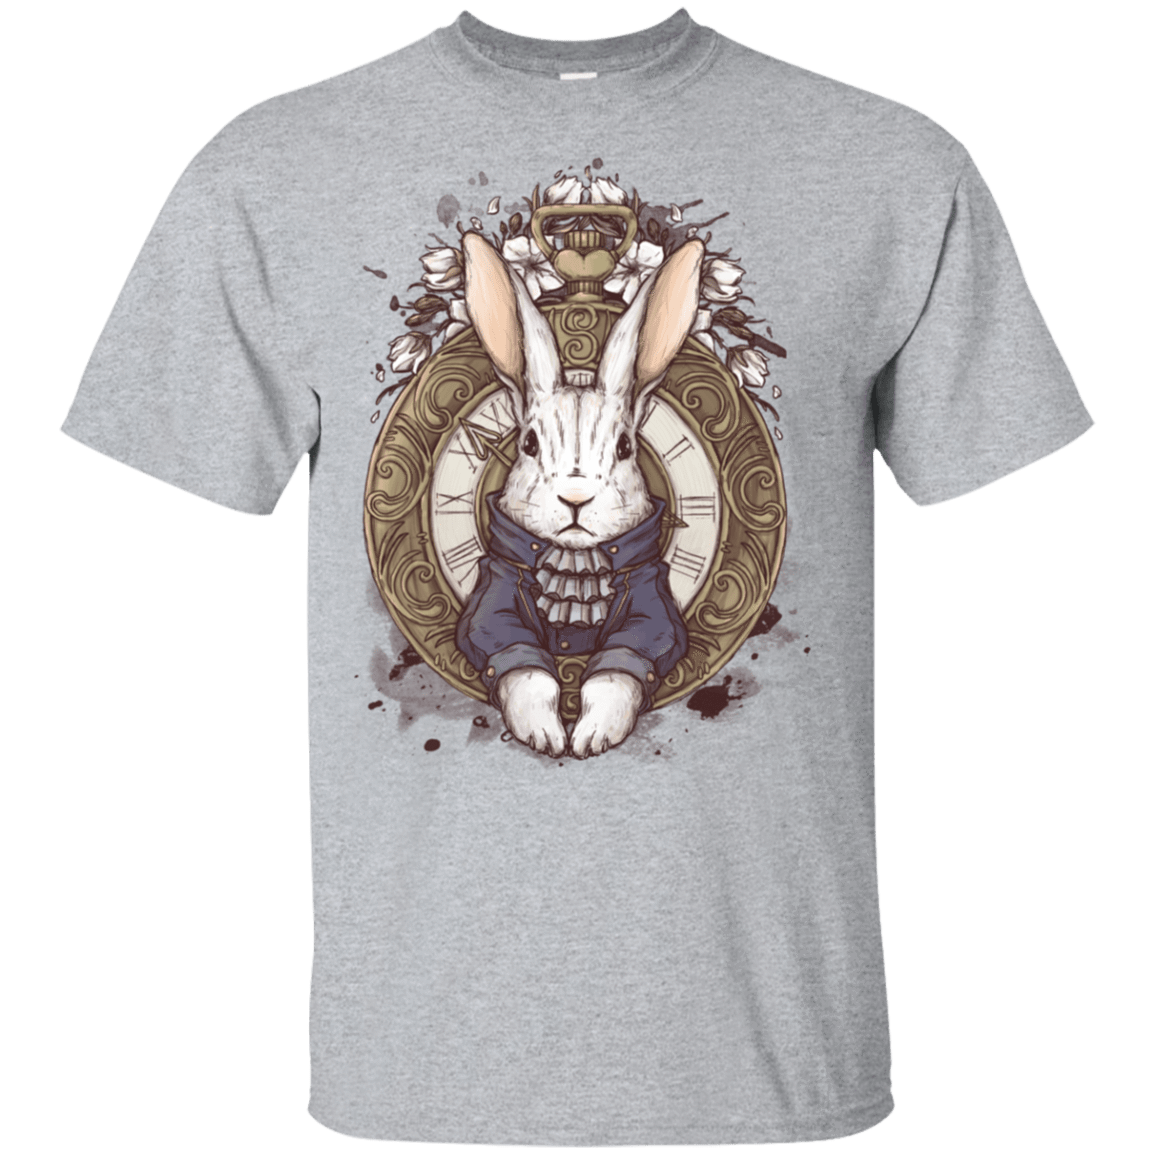 The White Rabbit T-Shirt